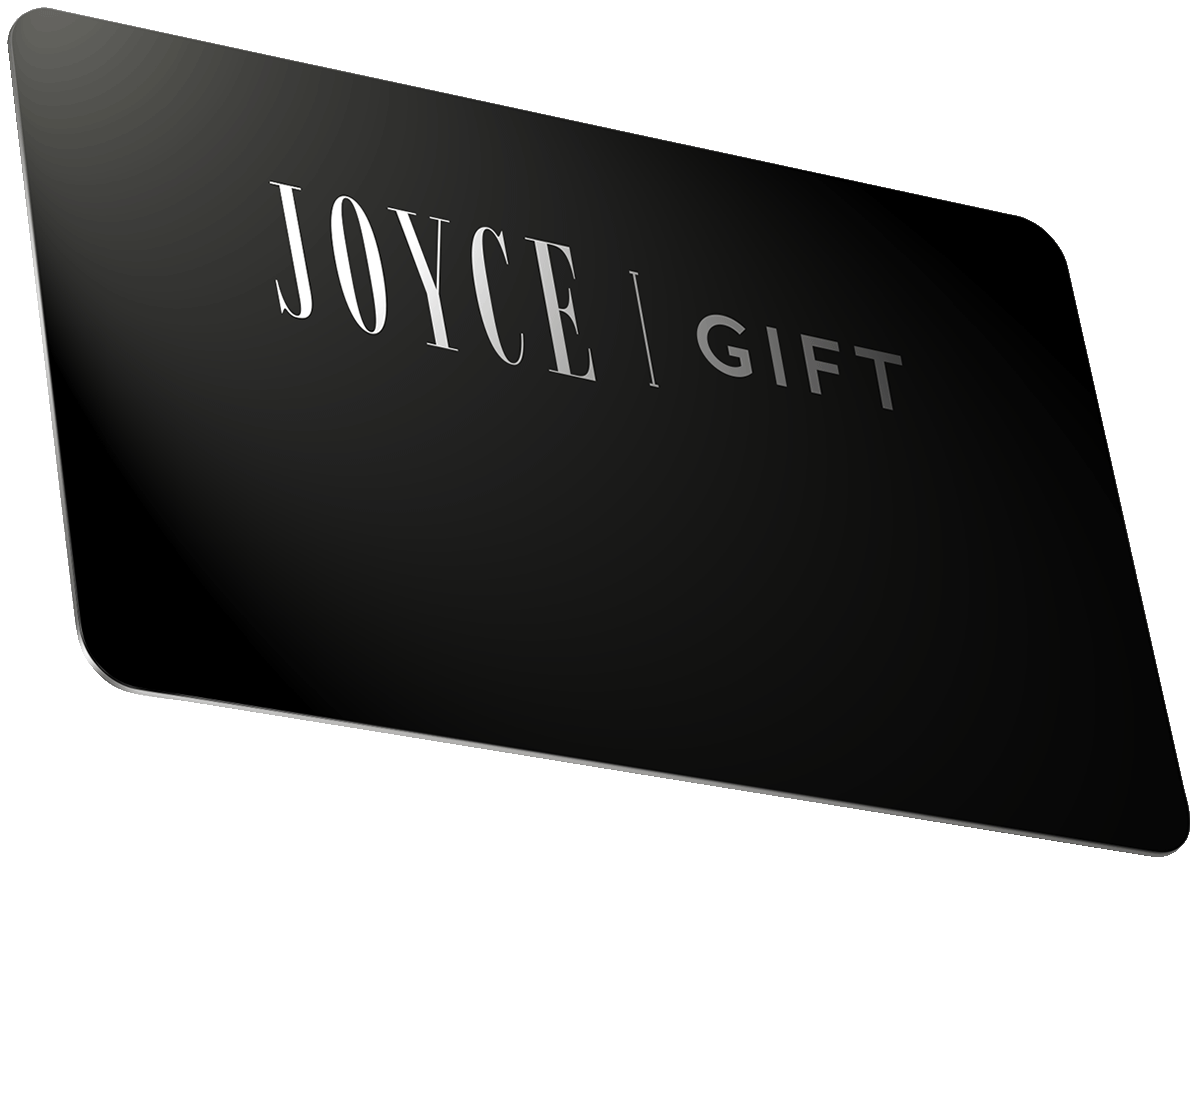 JOYCE Gift Cards allow you to<br /> give your loved one exactly what they want.